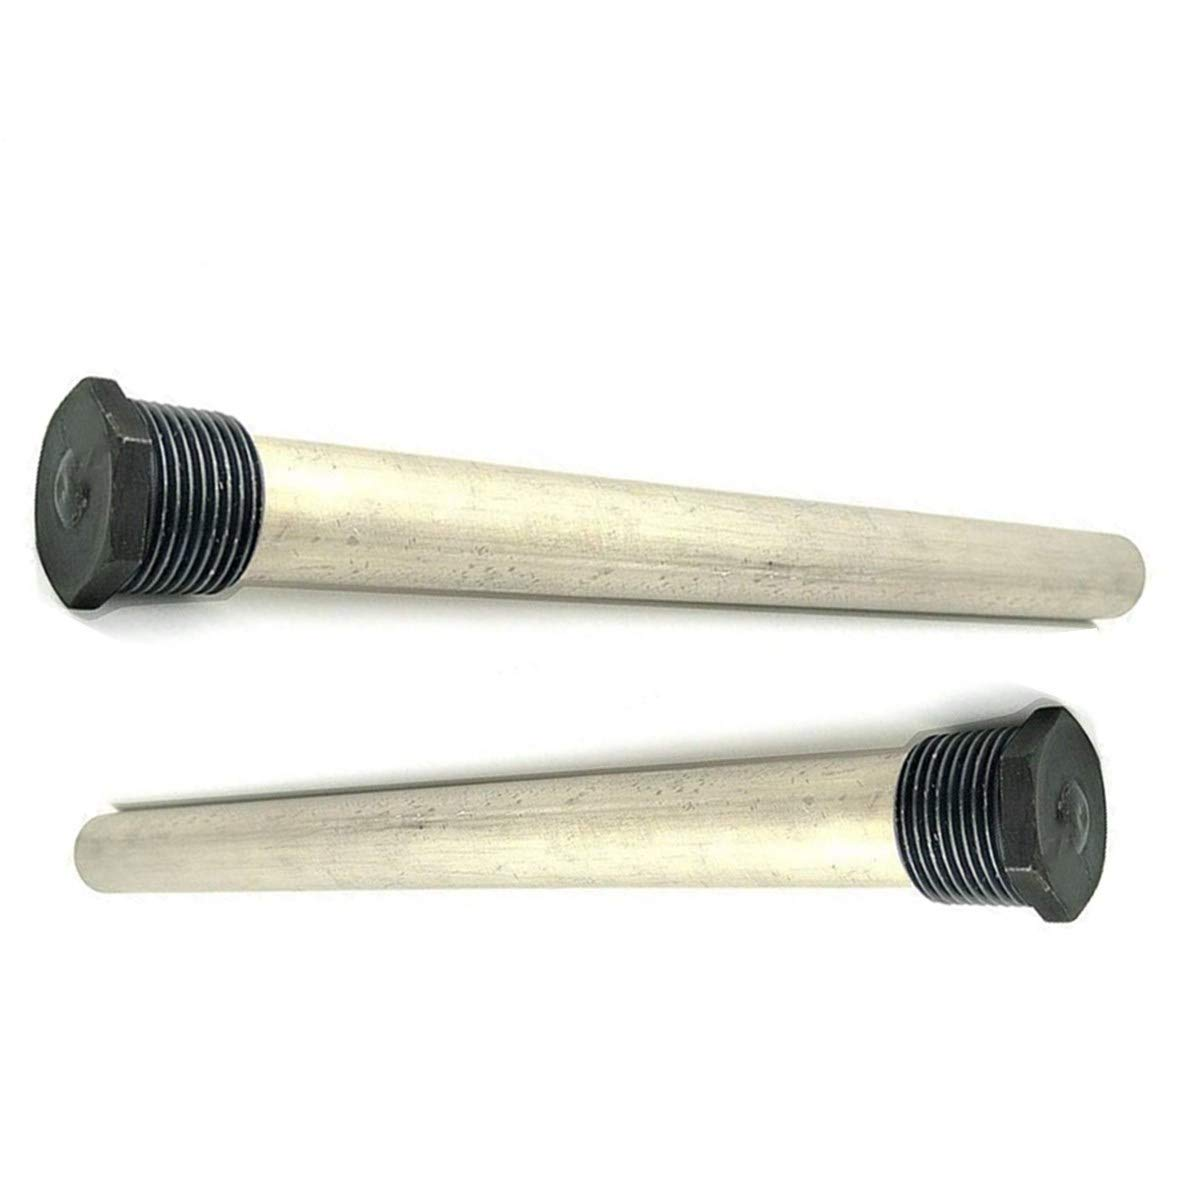 RV Water Heater Anode Rod, Magnesium Water Heater Tank Anode Rod for 9.25'' Long ¾'' Threads Suburban A.O.Smith Whirlpool (2 PACK)